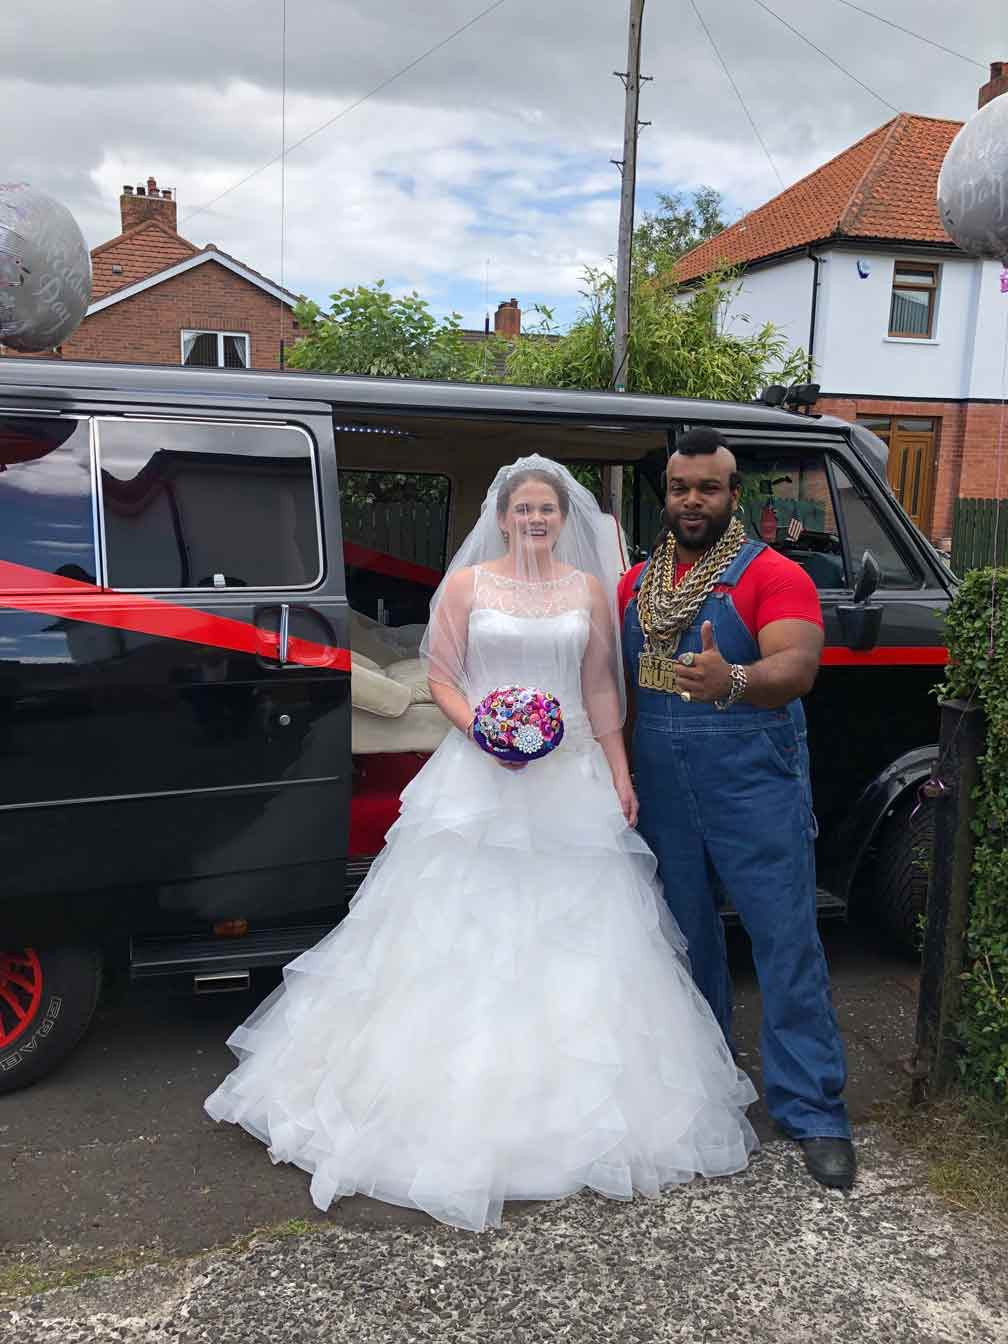 Mr T Lookalike coperate 80s event ideas birthday ideas video message from Mr T Trolly service celebrity parties and 80s events gym adverts public appearances weddings wedding